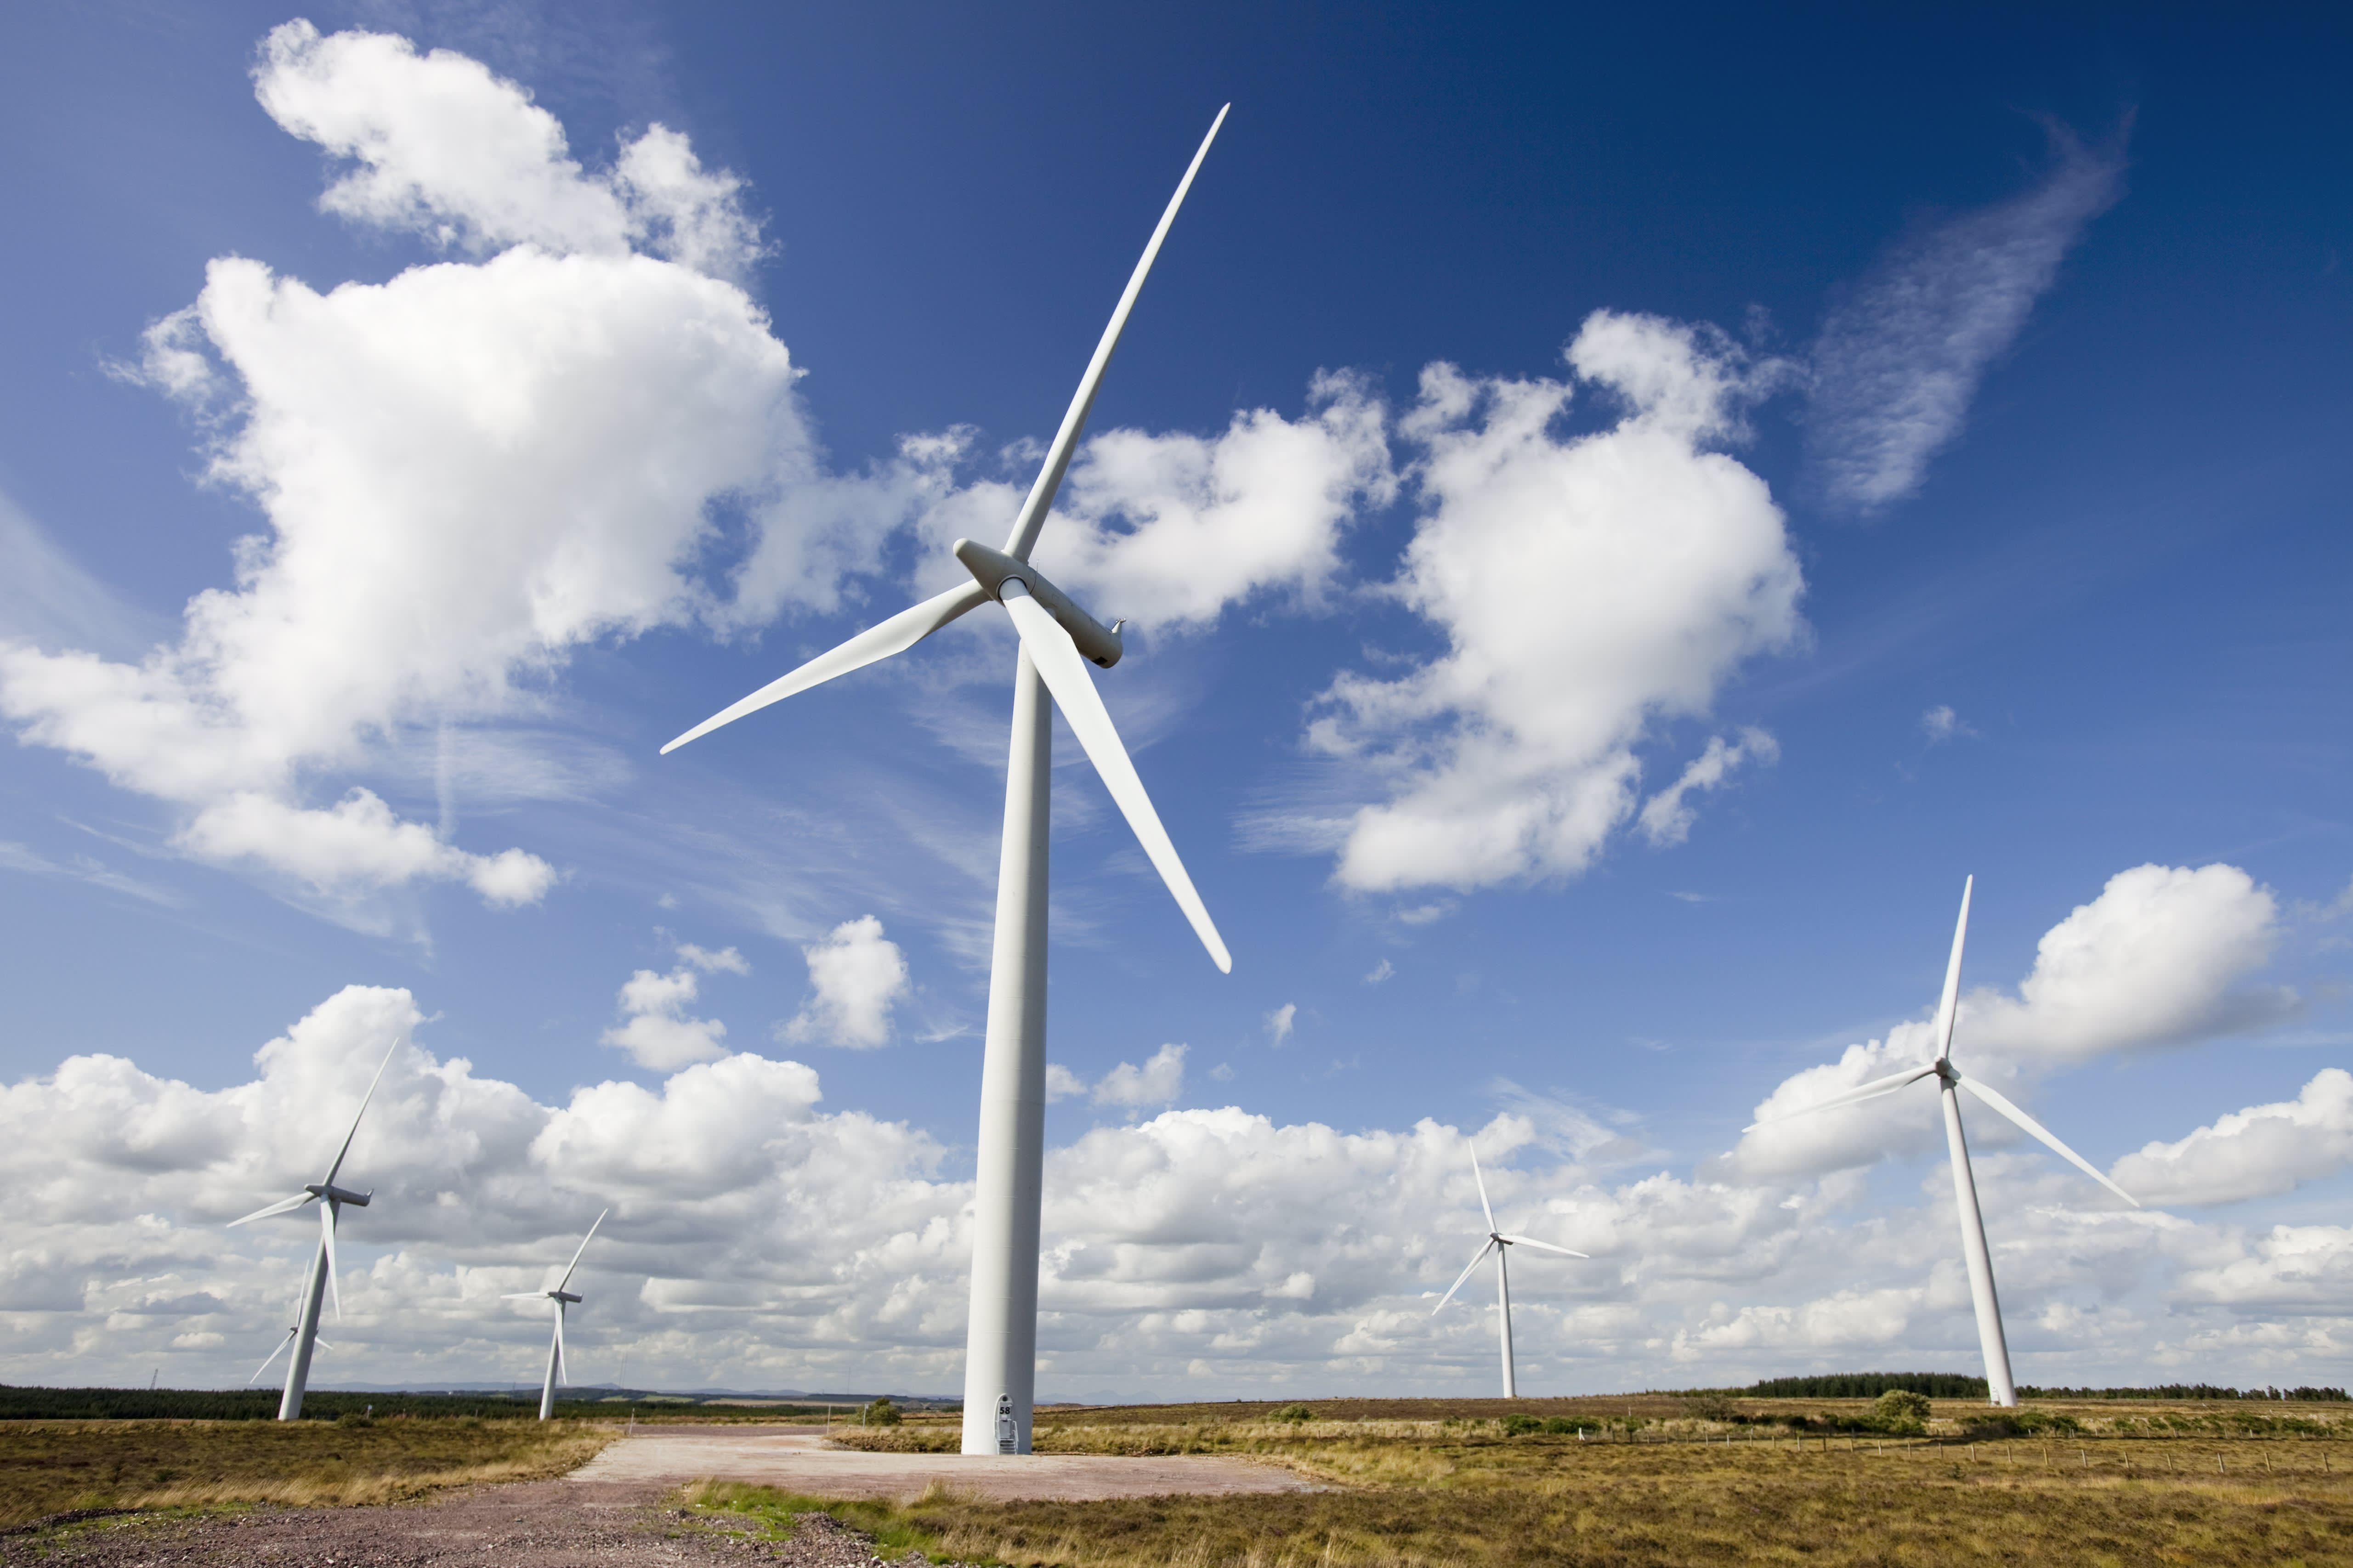 Scotland has produced enough wind energy to power its homes